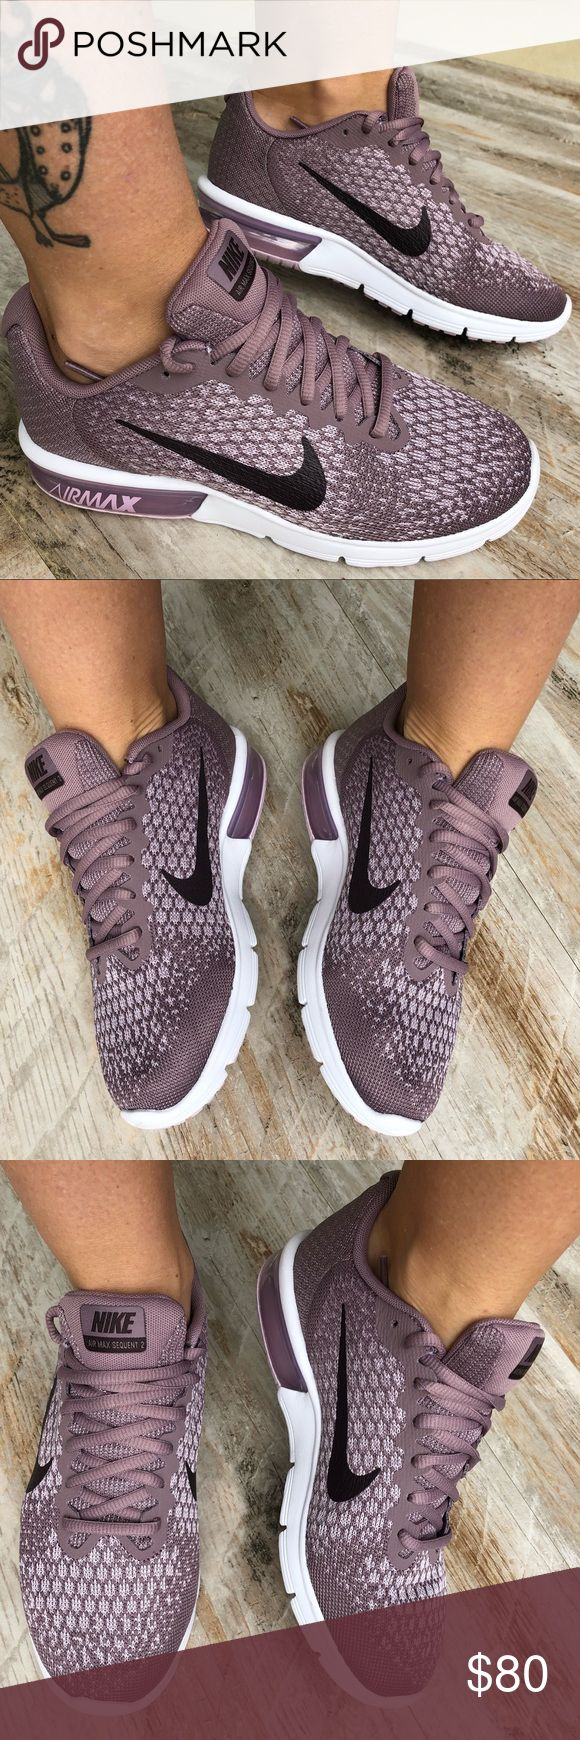 Air Max Nike New Price Firm Air Max Nike New Price Firm Nike Shoes Sneakers